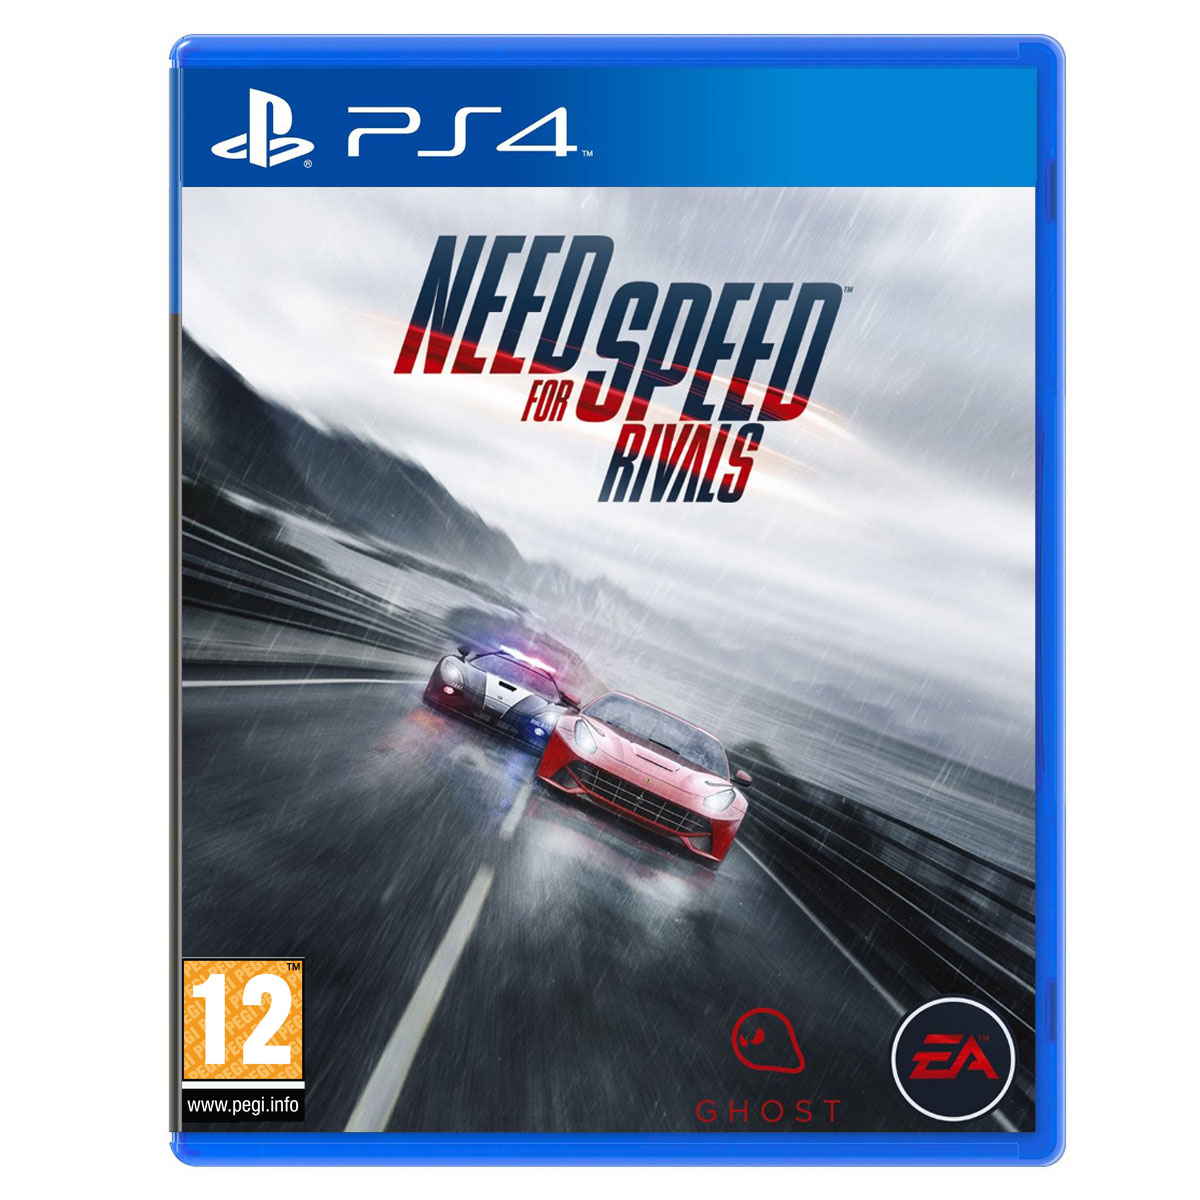 need for speed rivals ps4 jeux ps4 electronic arts sur ldlc. Black Bedroom Furniture Sets. Home Design Ideas